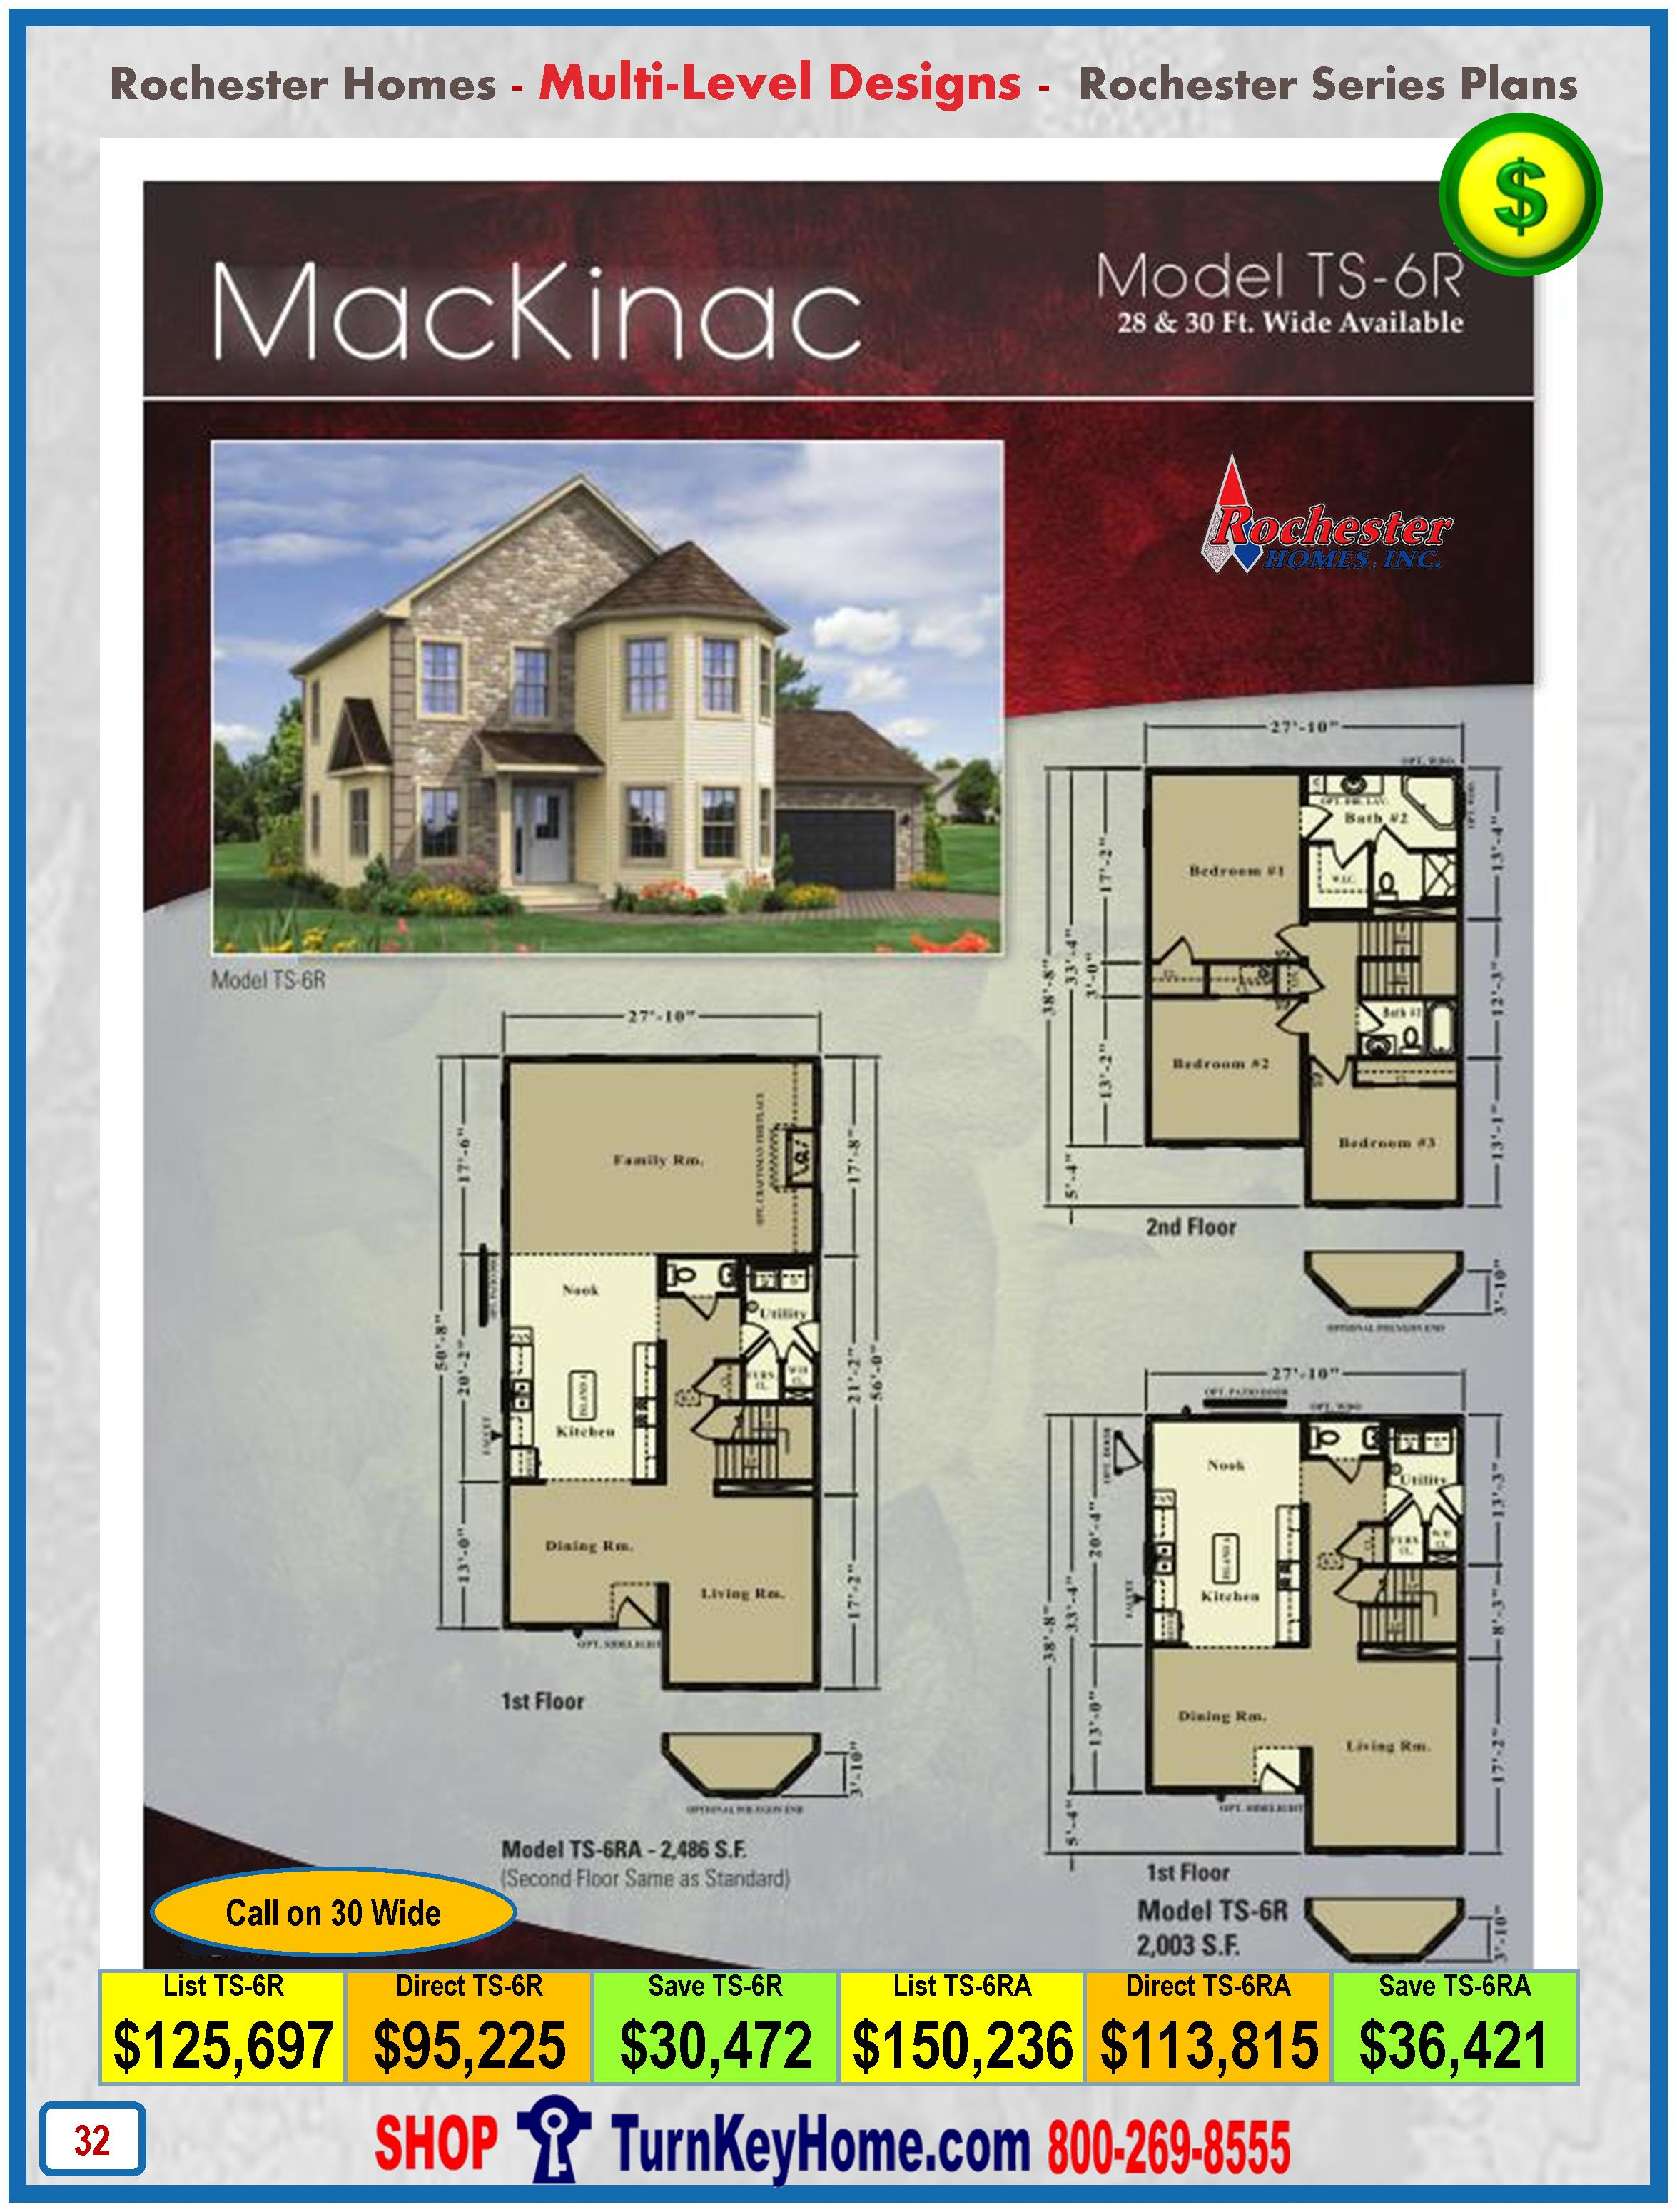 Modular.Home.Rochester.Homes.Two.Story.Mackinac.TS6R.P32.1215